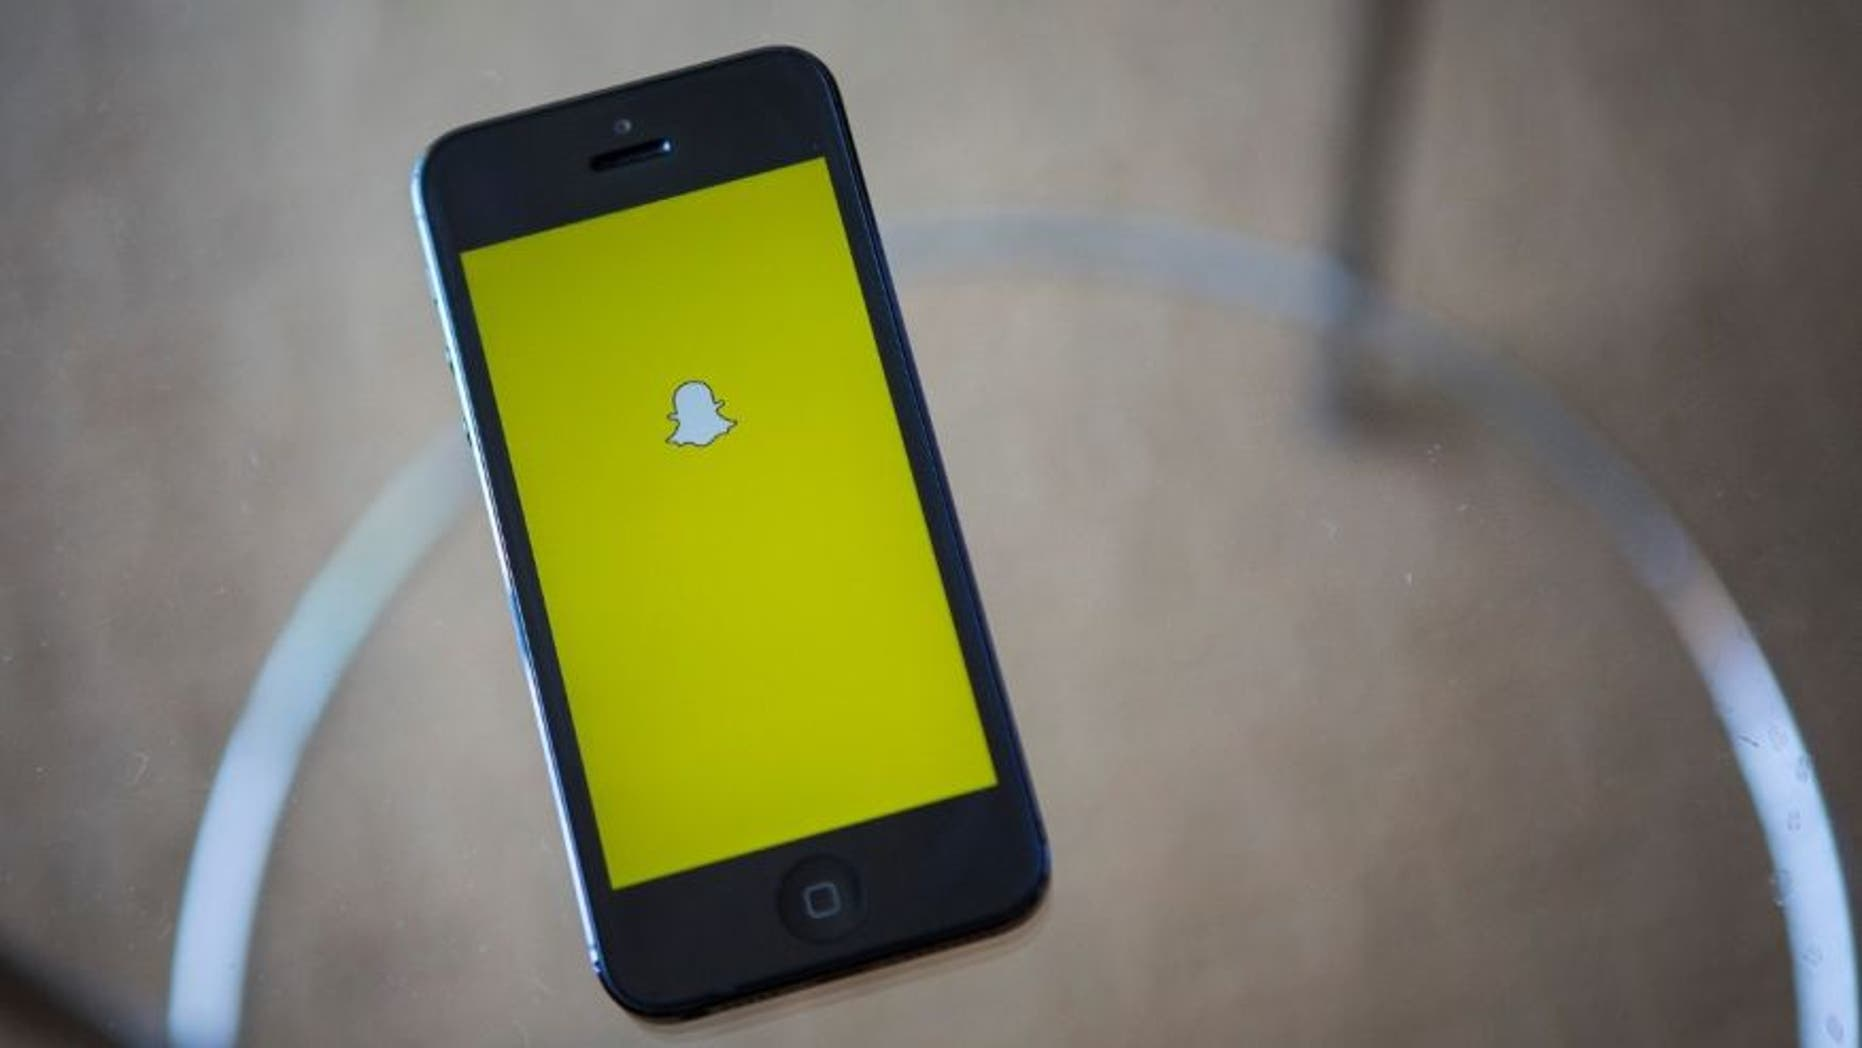 Snapchat employees abused data access, spied on users: report